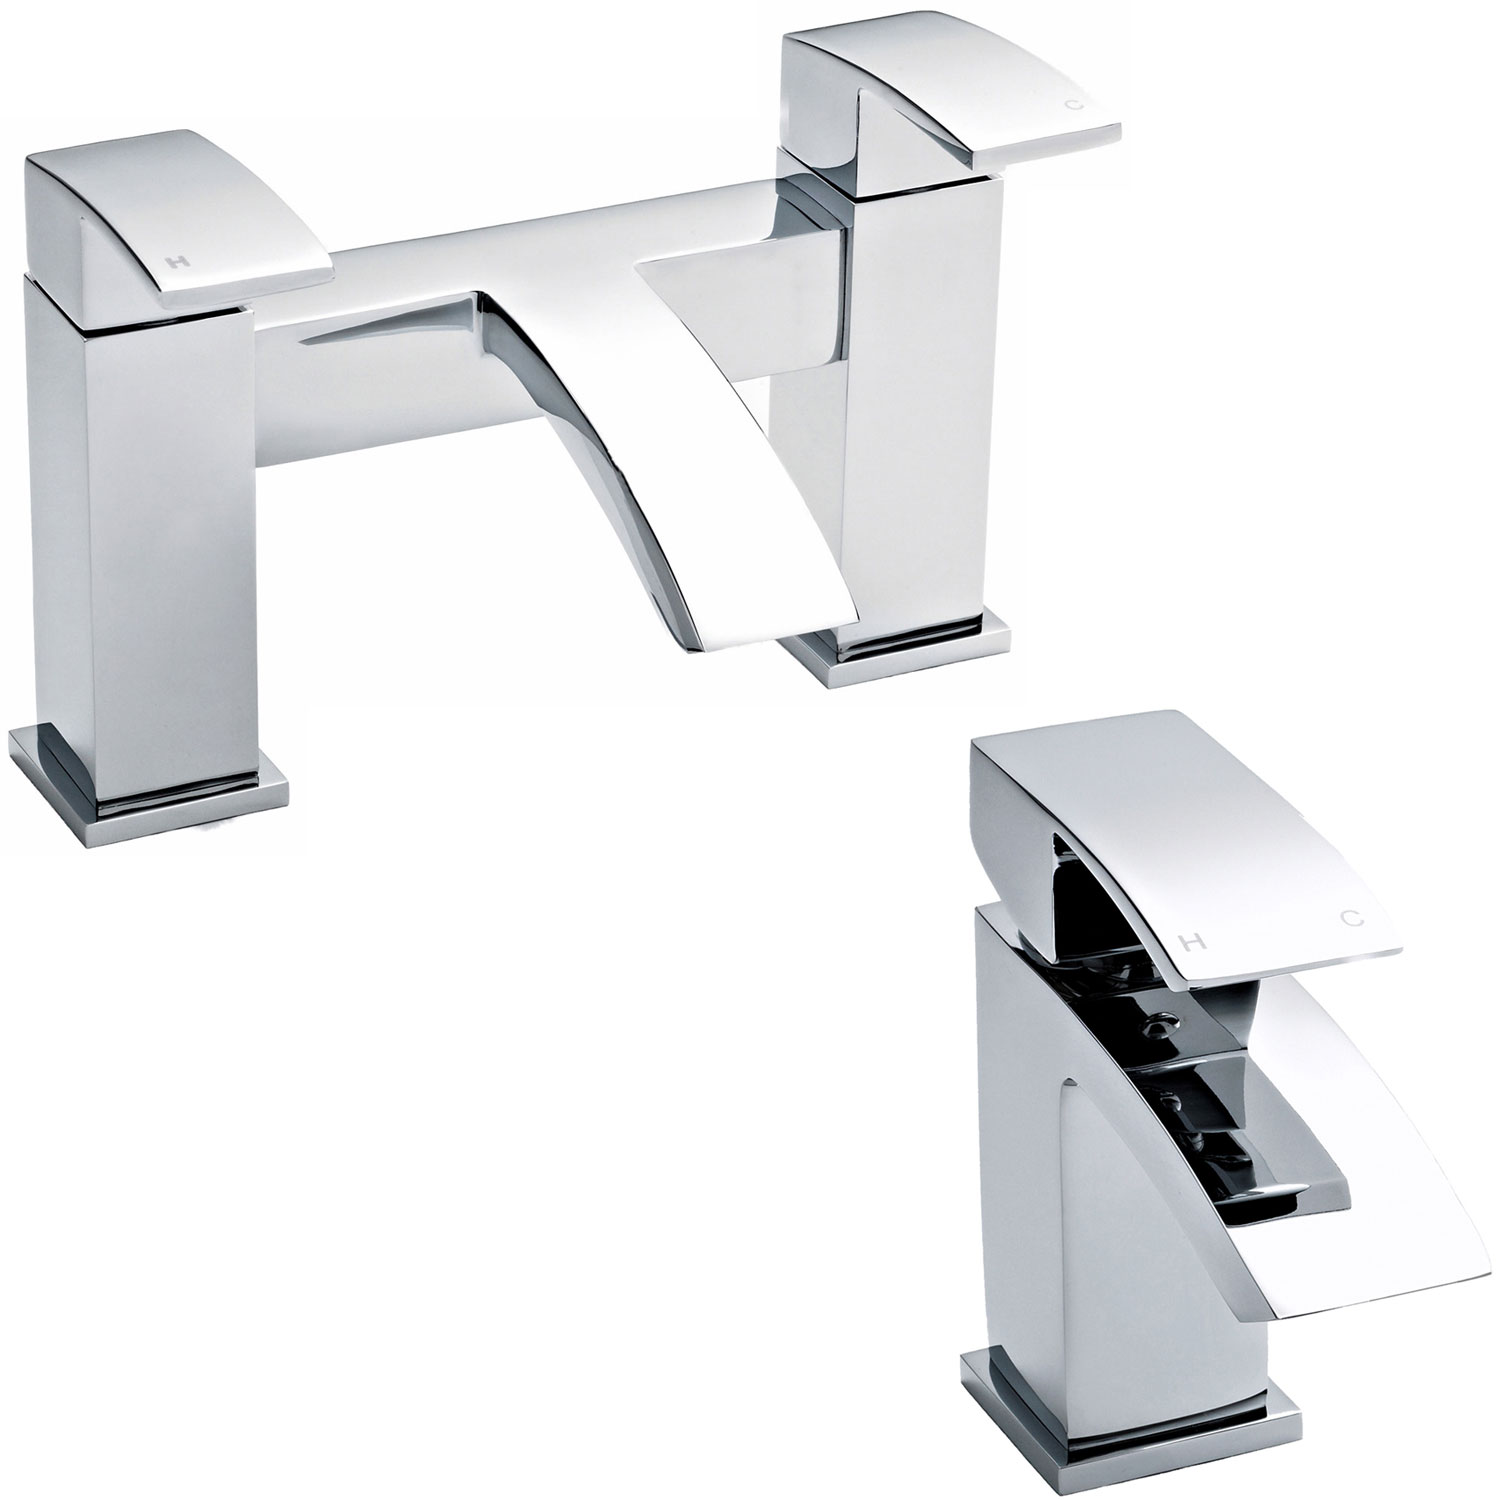 Premier Vibe Mono Basin Mixer Tap and Bath Filler Tap Pillar Mounted, Chrome